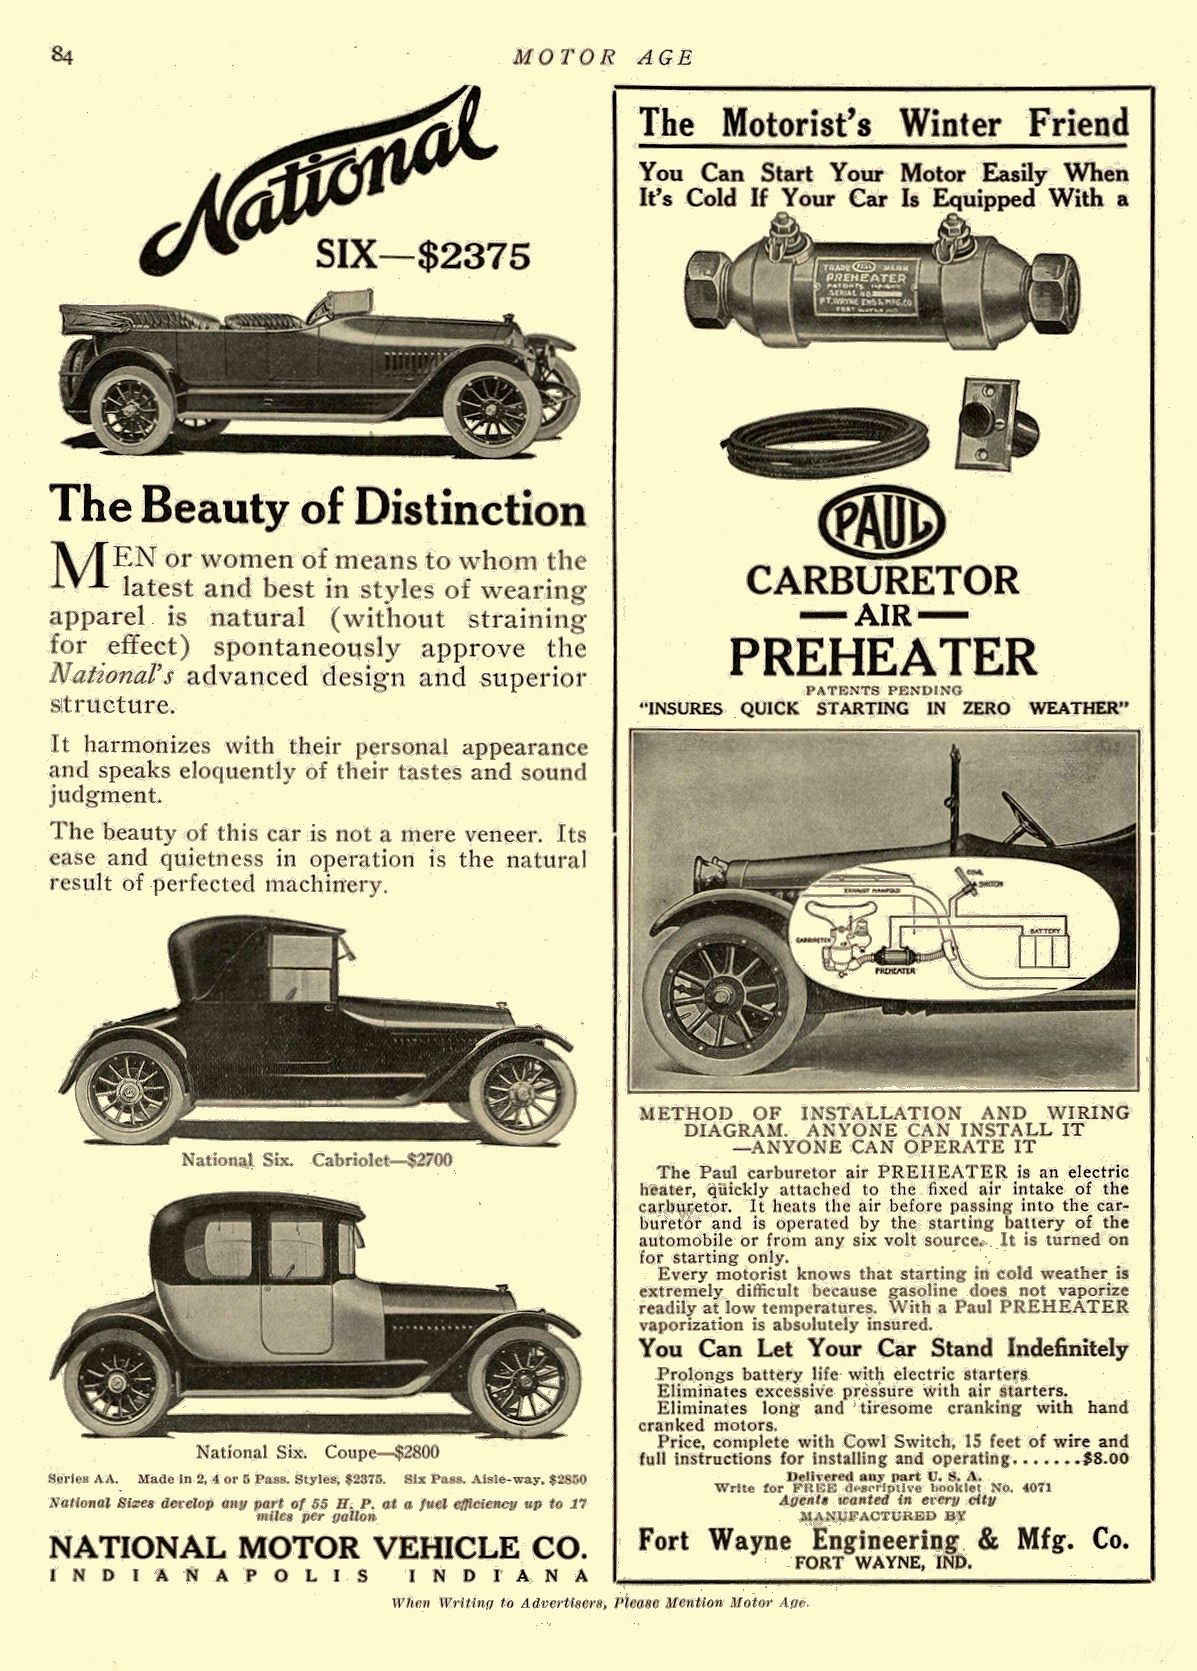 1914 12 17 NATIONAL The Beauty of Distinction NATIONAL MOTOR VEHICLE CO. Indianapolis, IND MOTOR AGE December 17, 1914 8.5″x11.75″ page 84